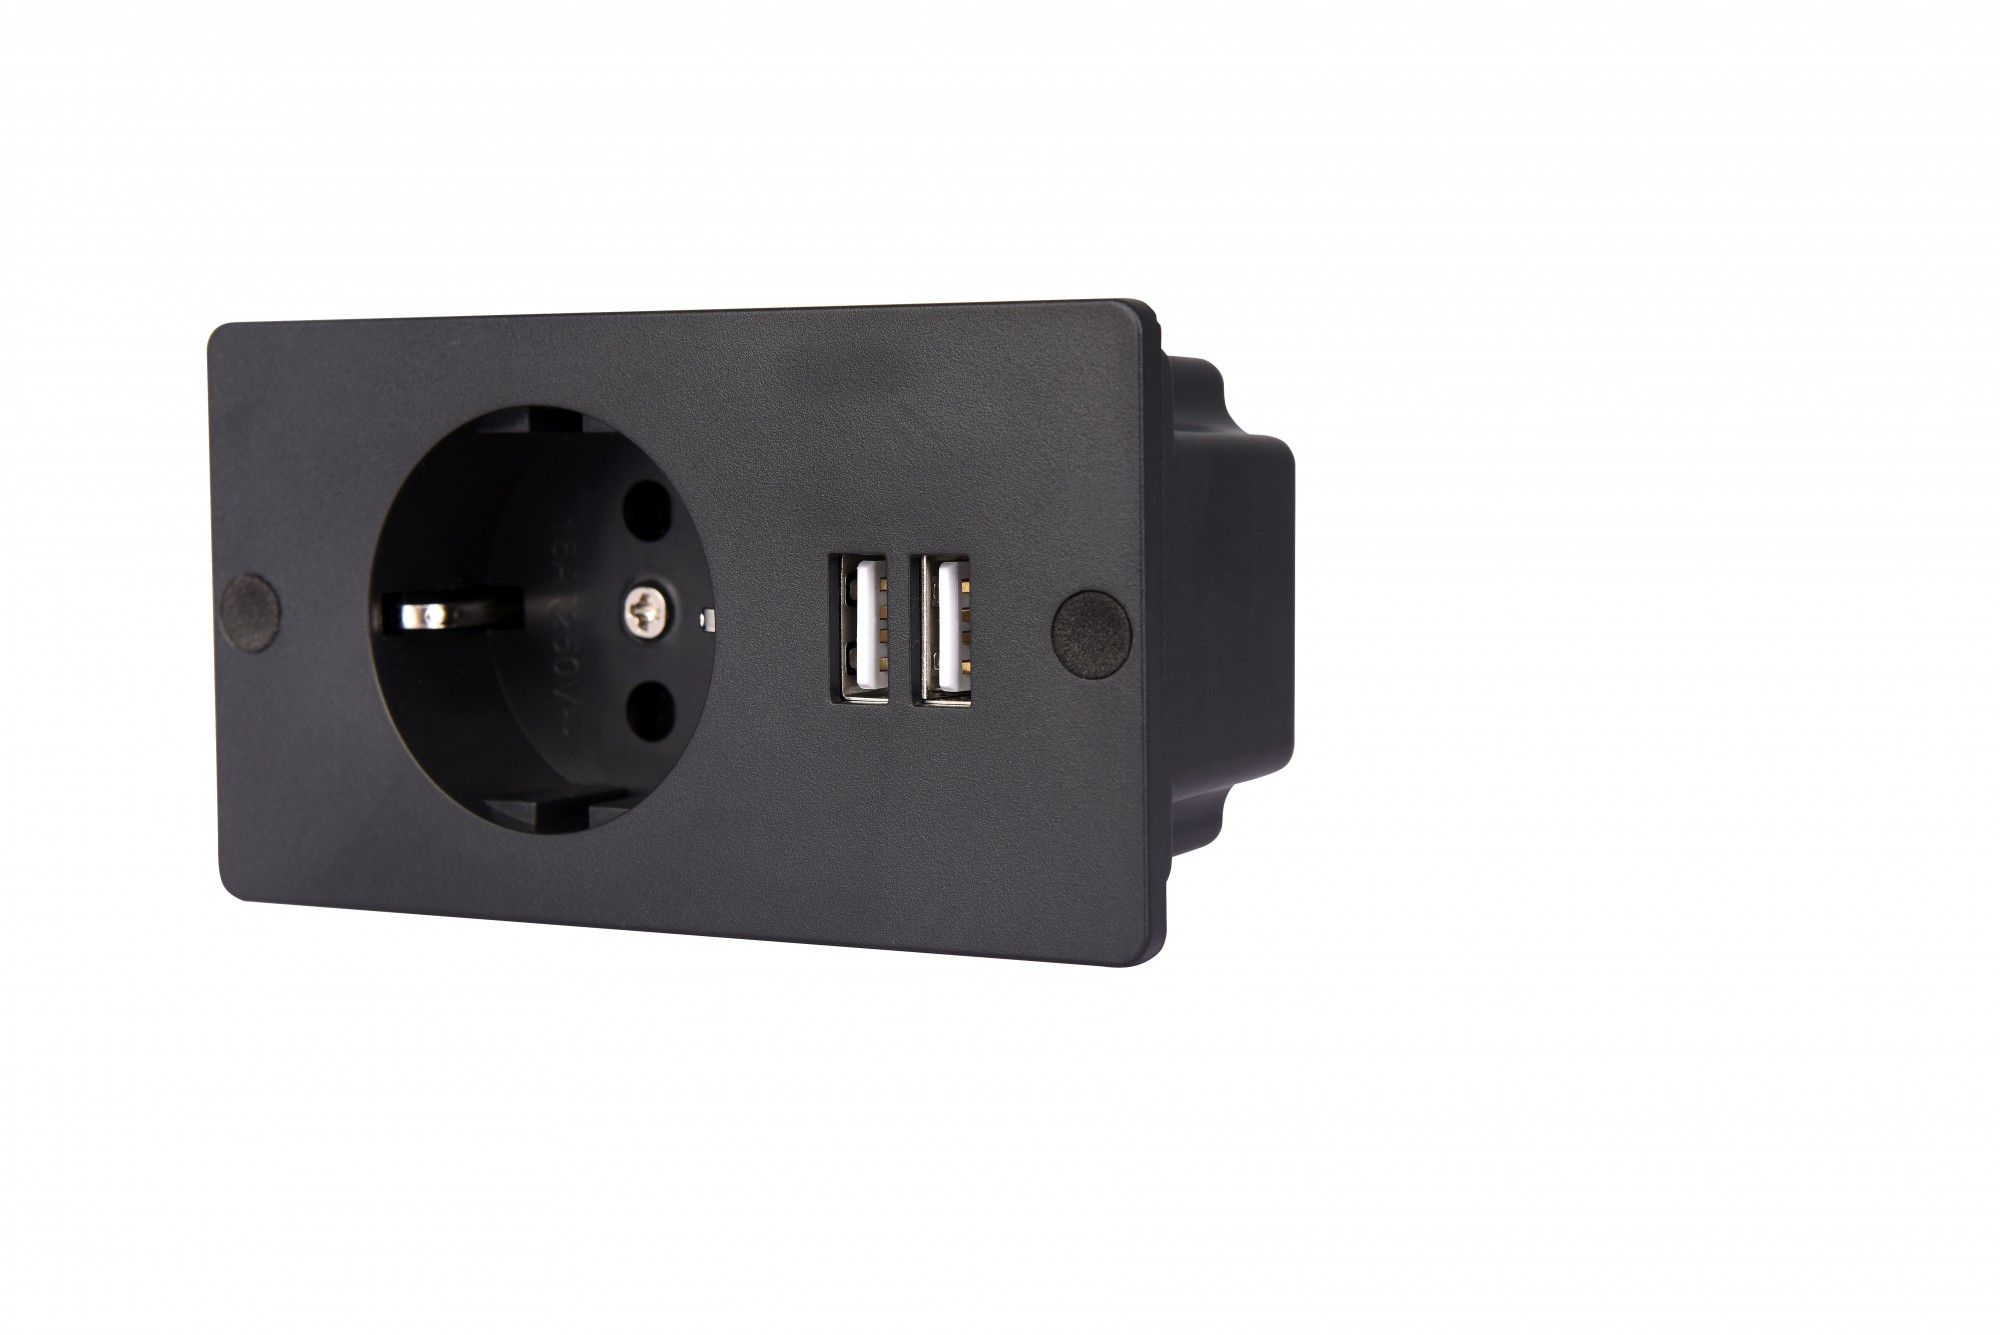 Power outlet with 2 USB charging